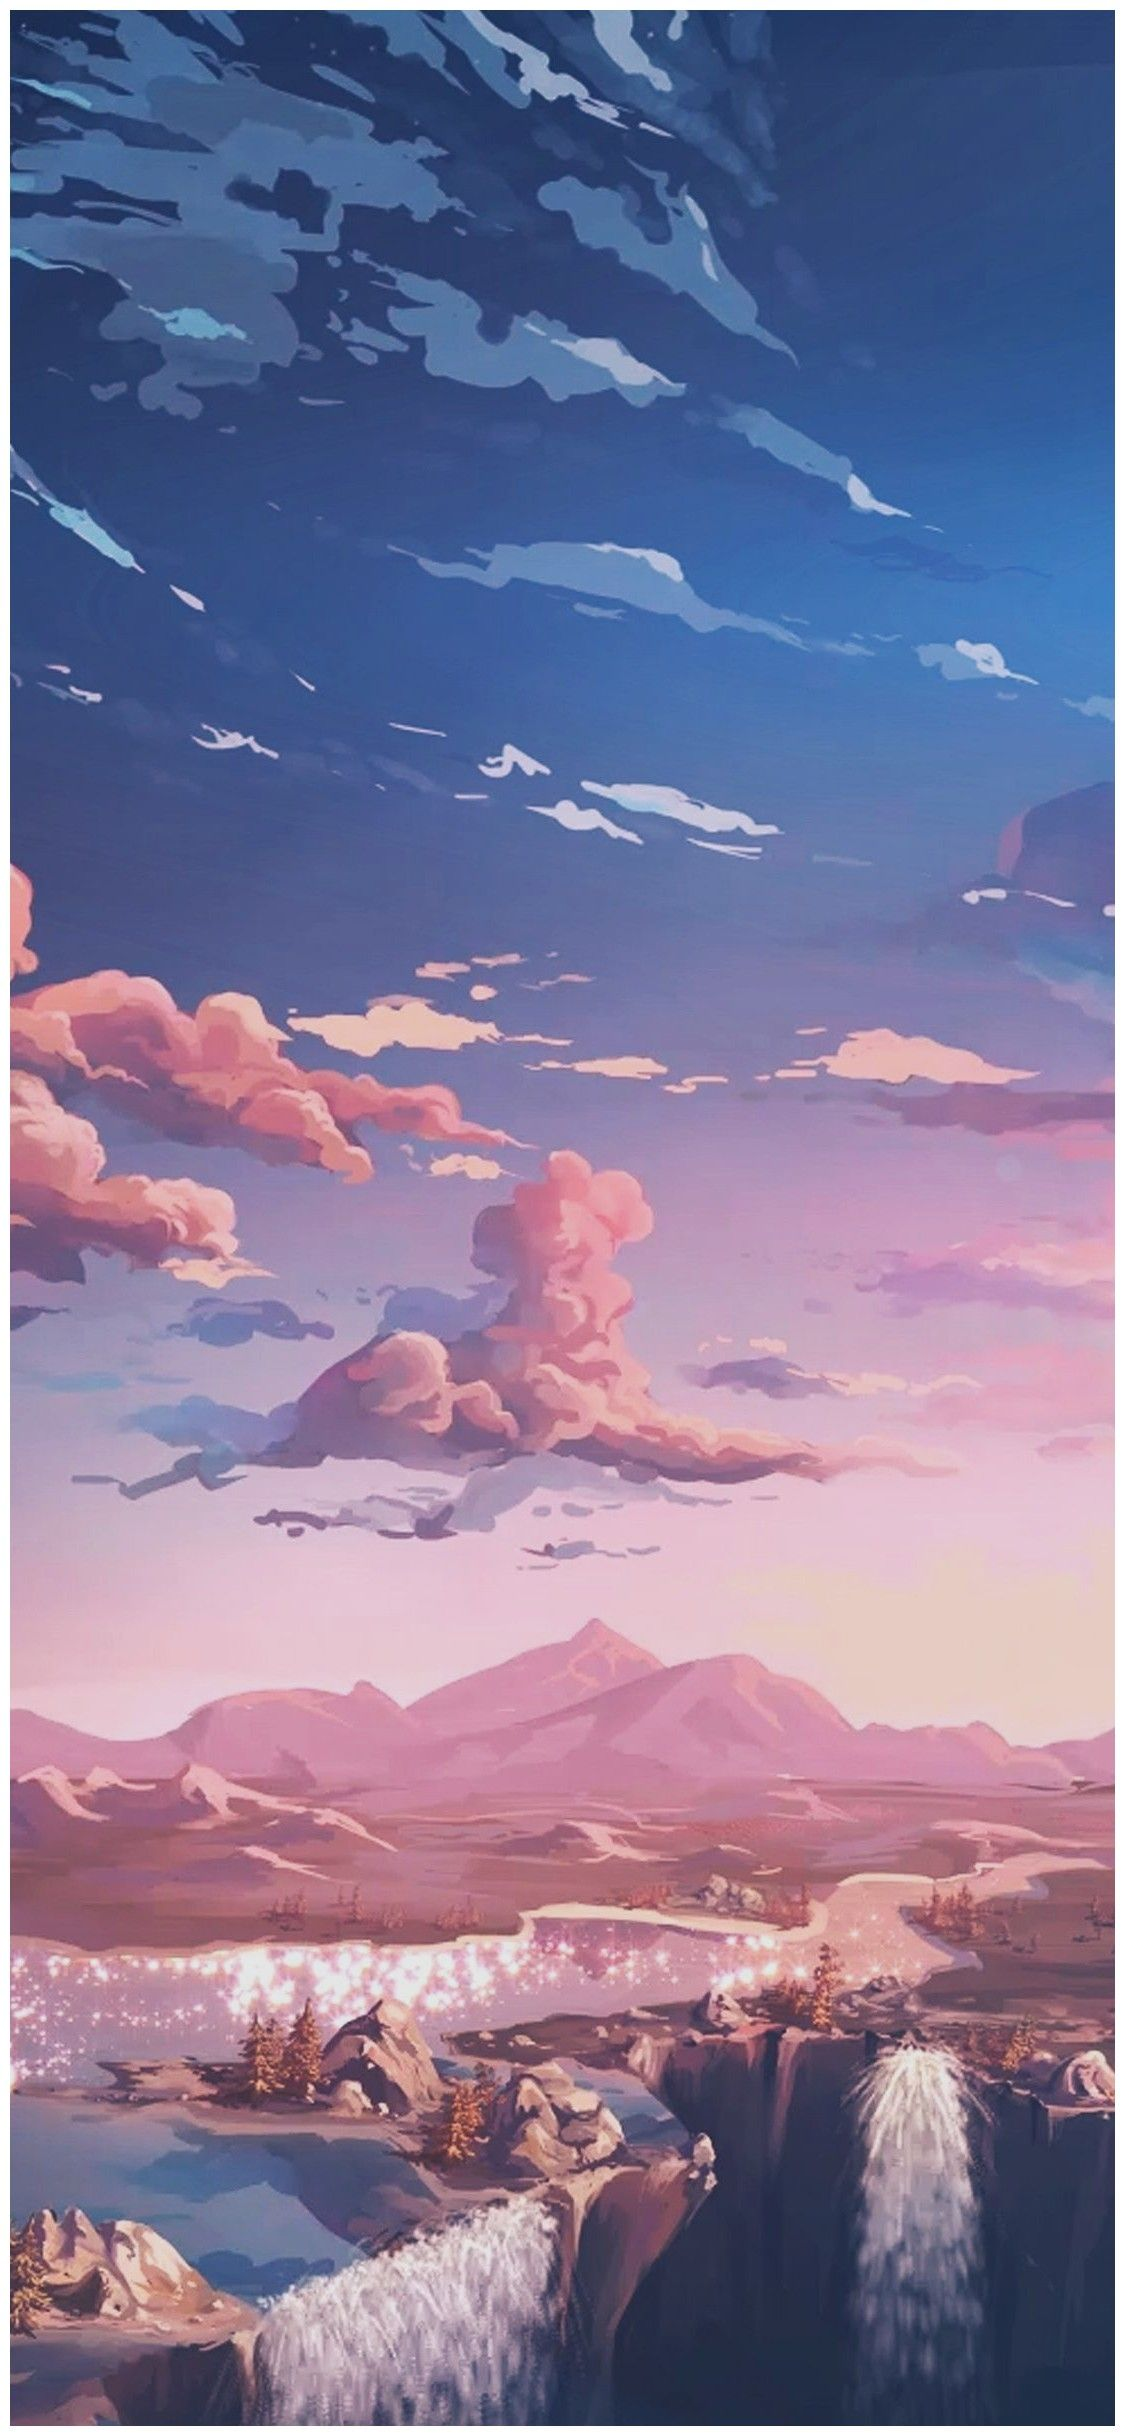 Anime Tumblr Aesthetic : anime, tumblr, aesthetic, Anime, Aesthetic, Tumblr, Wallpapers, Backgrounds, WallpaperAccess